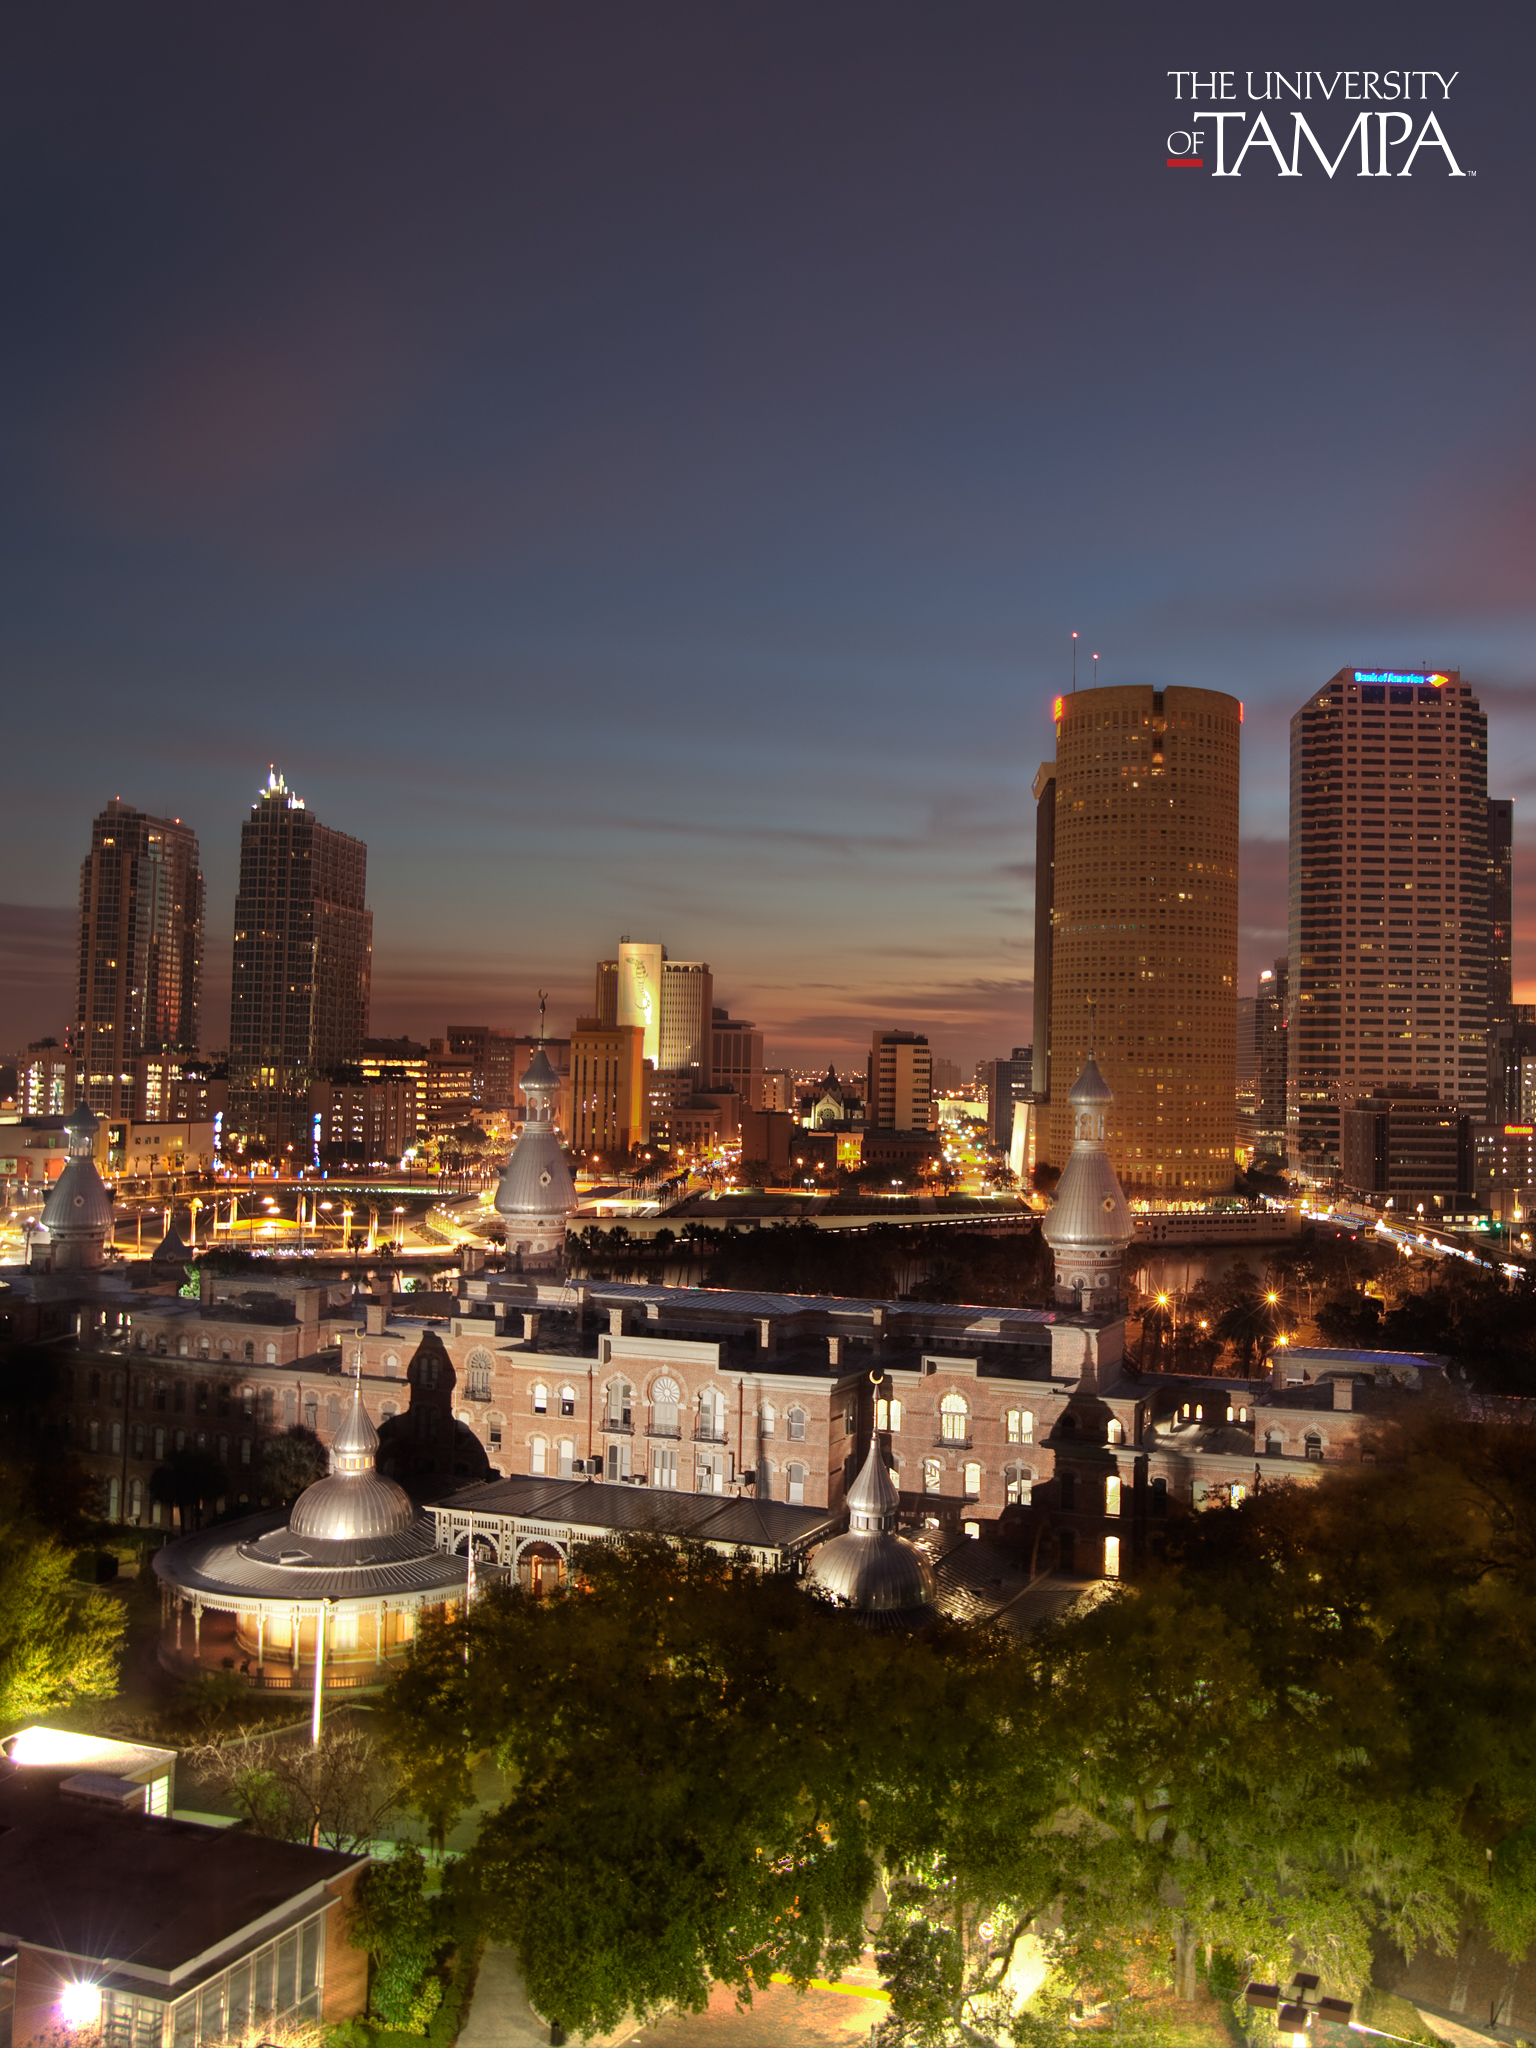 The University of Tampa   Public Information   Wallpaper Downloads 1536x2048